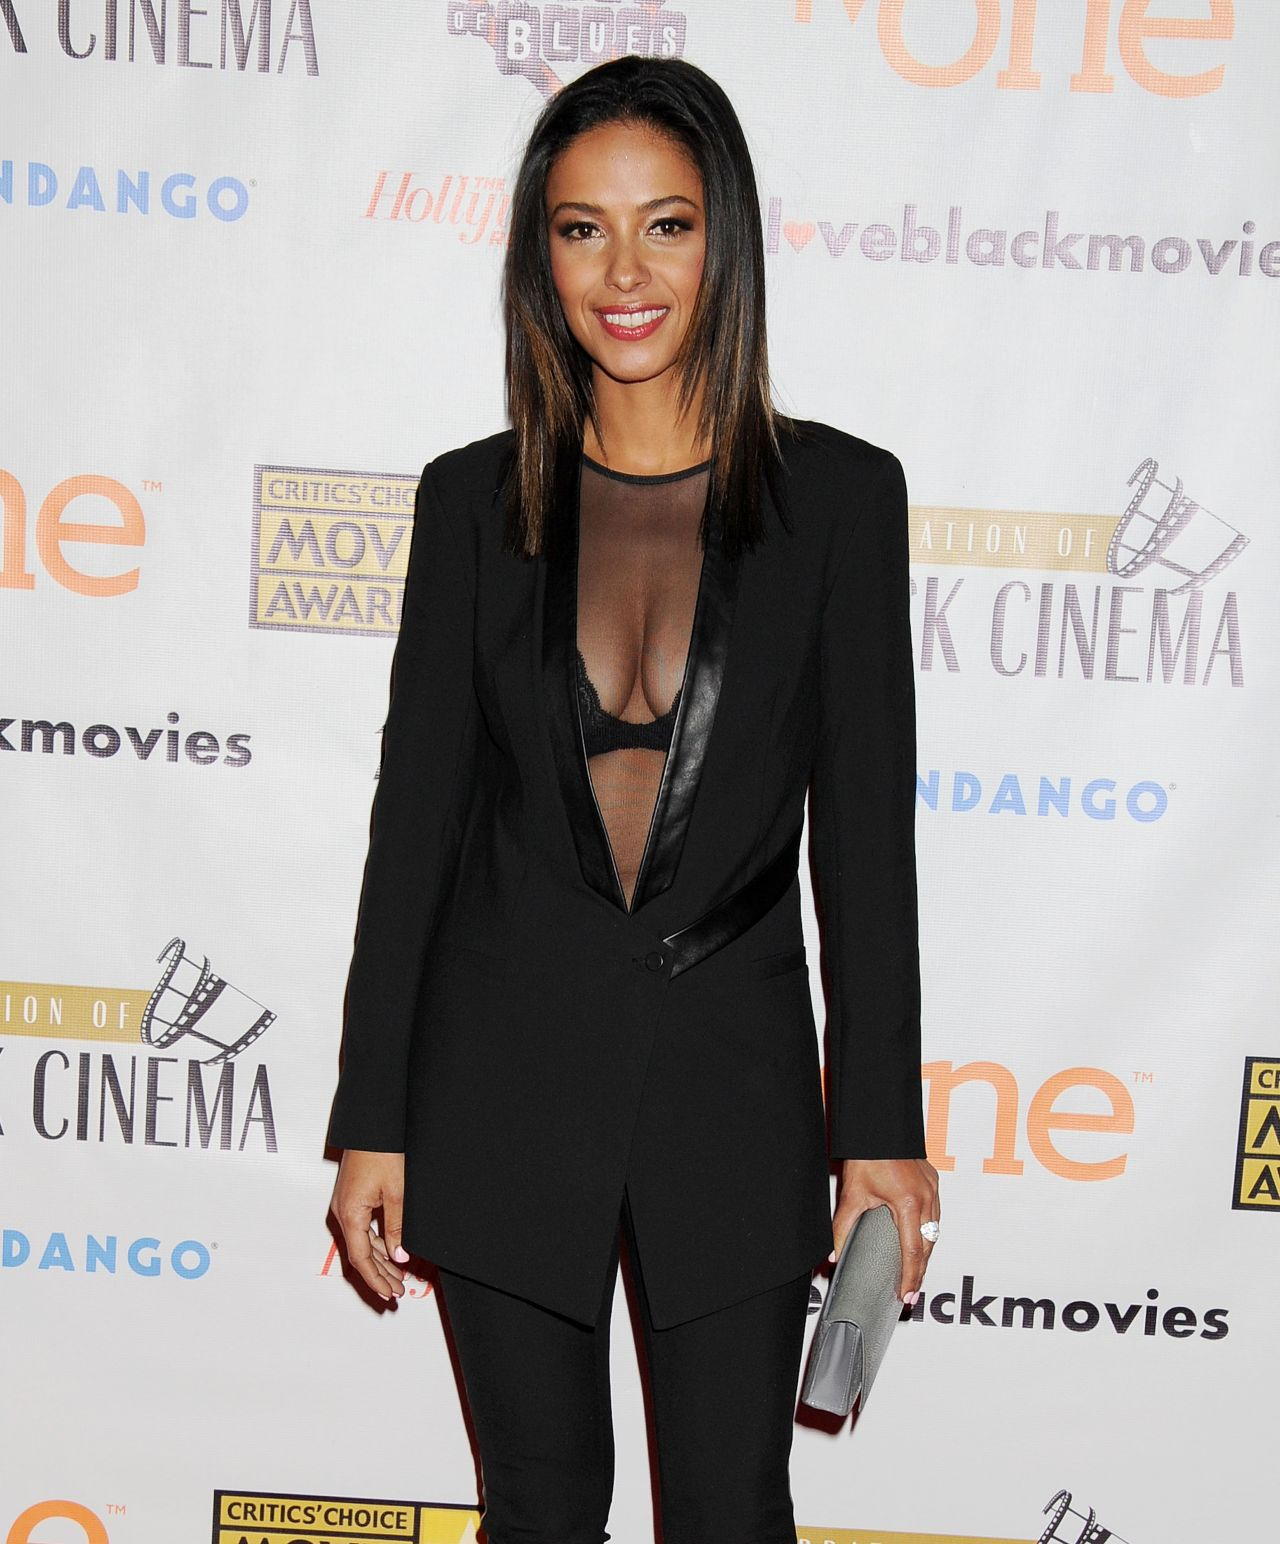 Meta Golding Red Carpet Photos - Celebration Of Black Cinema Hosted By Broadcast Film Critics - Jan. 2014